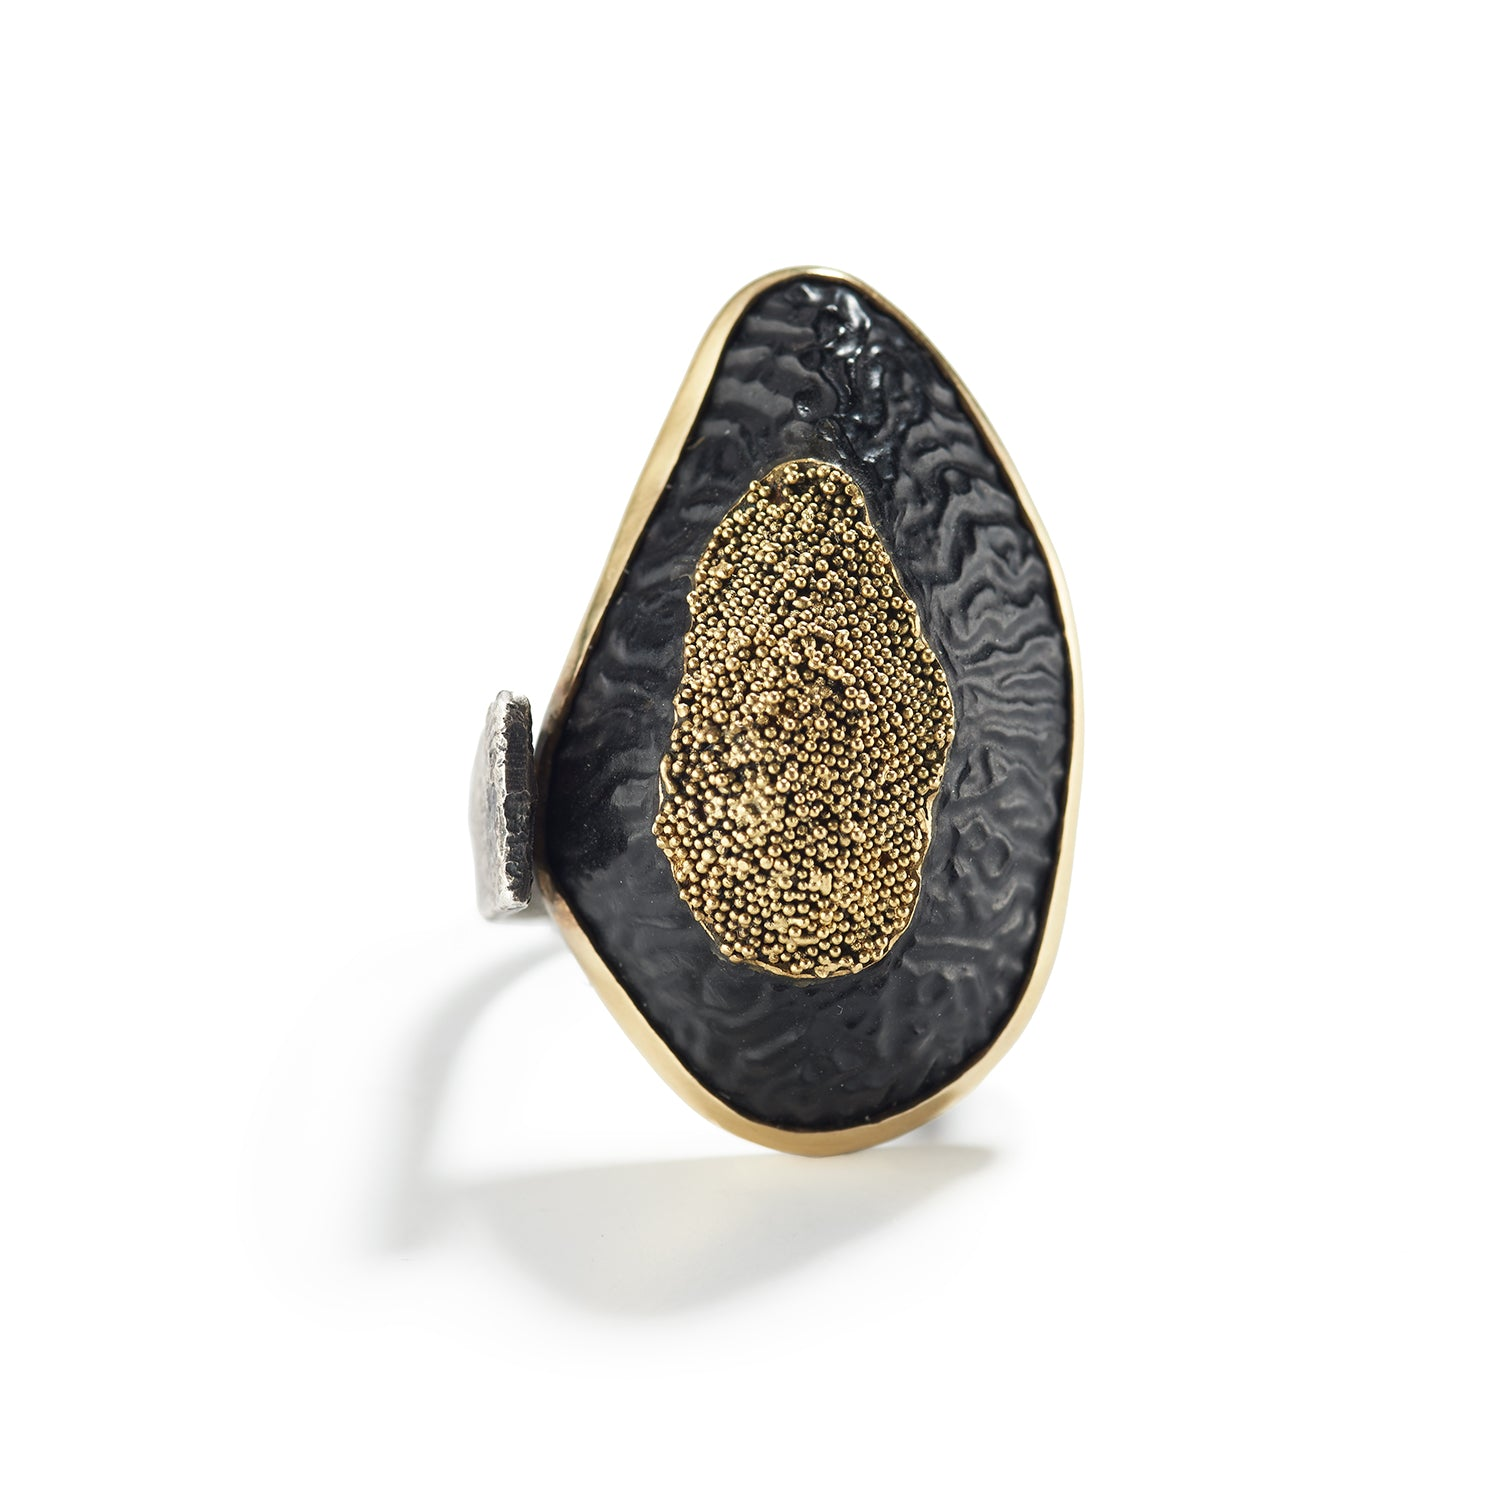 Borneo Beach Pebble and Gold Ring